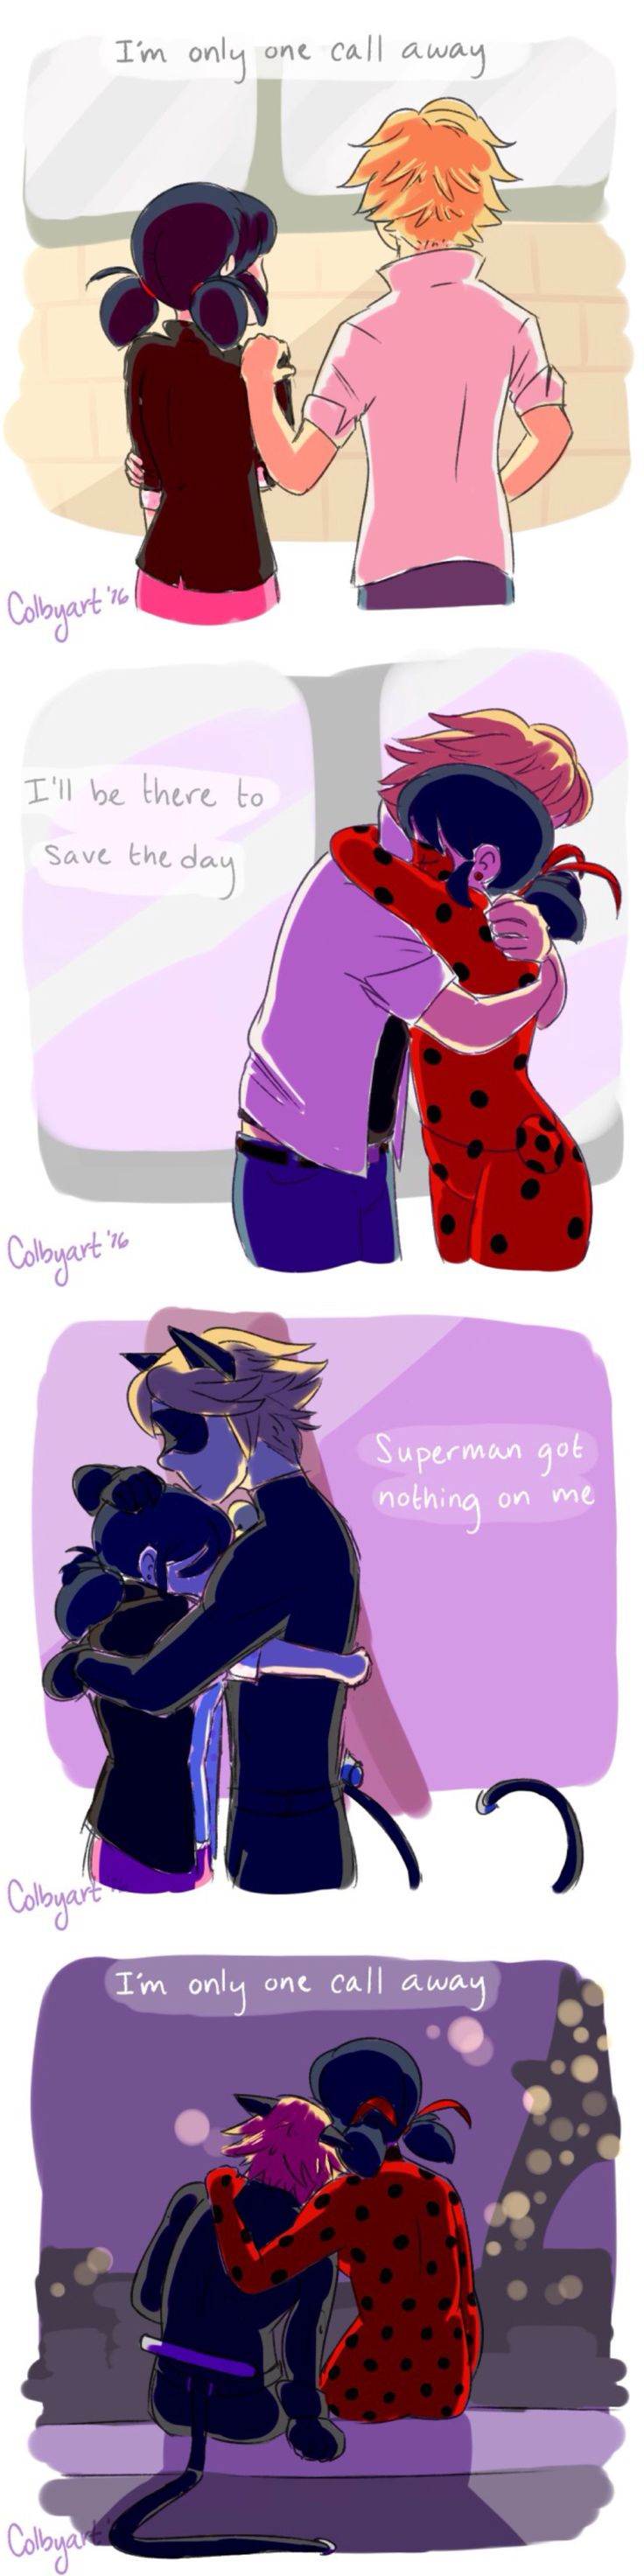 Miraculous Ladybug & Chat Noir - I'm only one call away      Marinette Adrien Agreste Chat Noir Cat Noir Ladybug Adrinette Ladrien Marichat Lady Noir